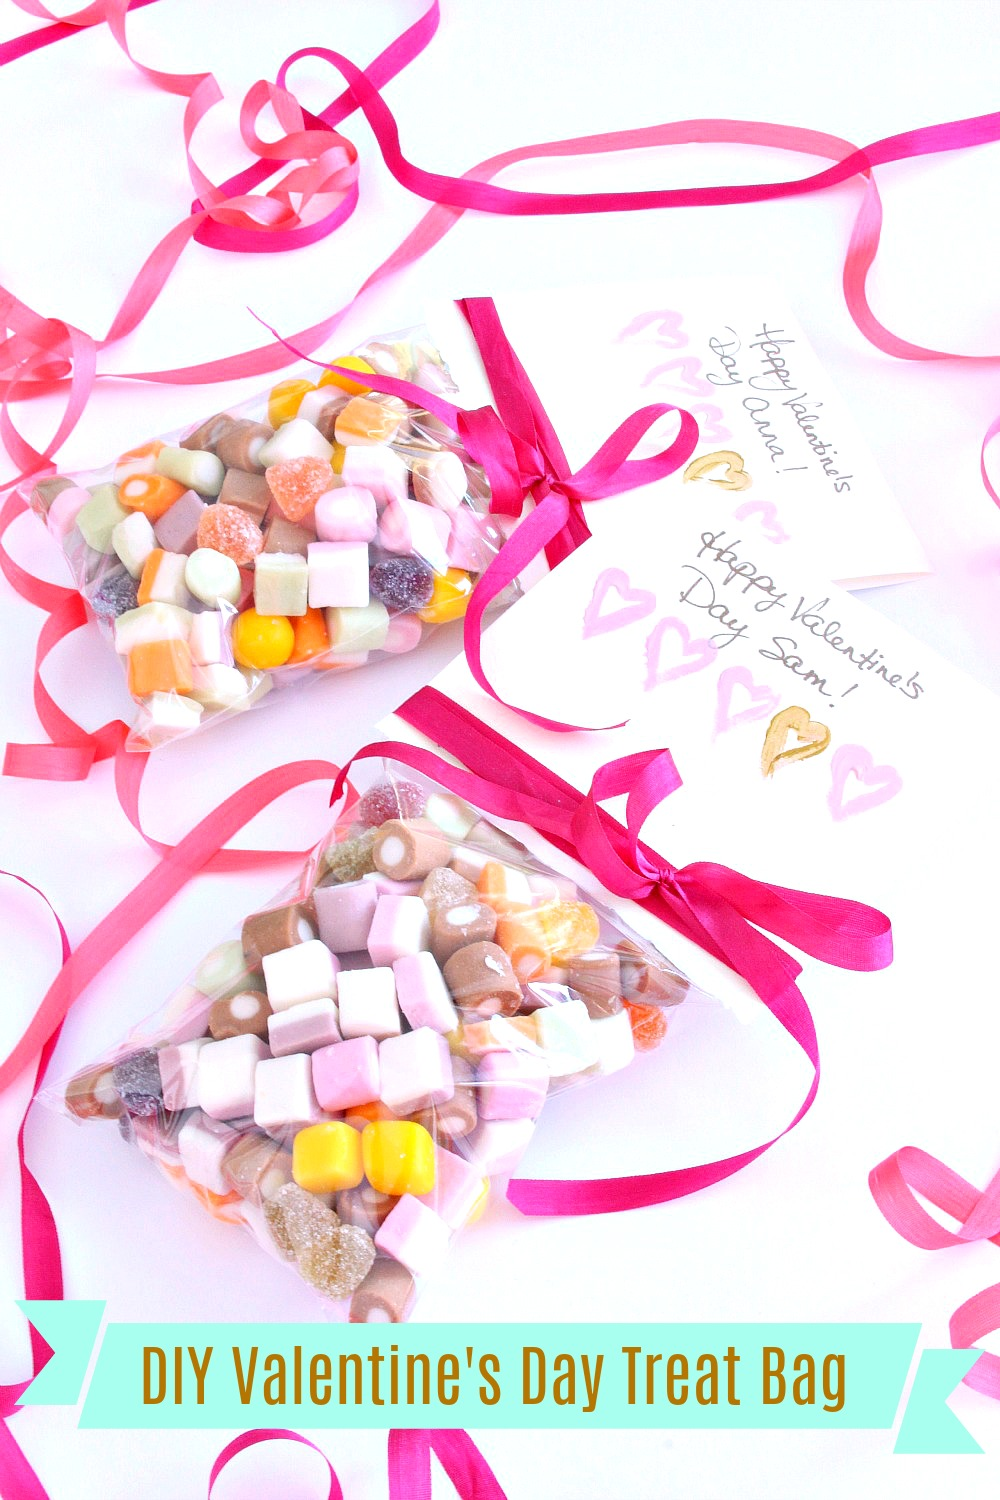 DIY Valentine's Treat Bag Filled with Tiny Dolly Mix Candy #dollymix #kidscrafts #valentinesday #valentinescrafts